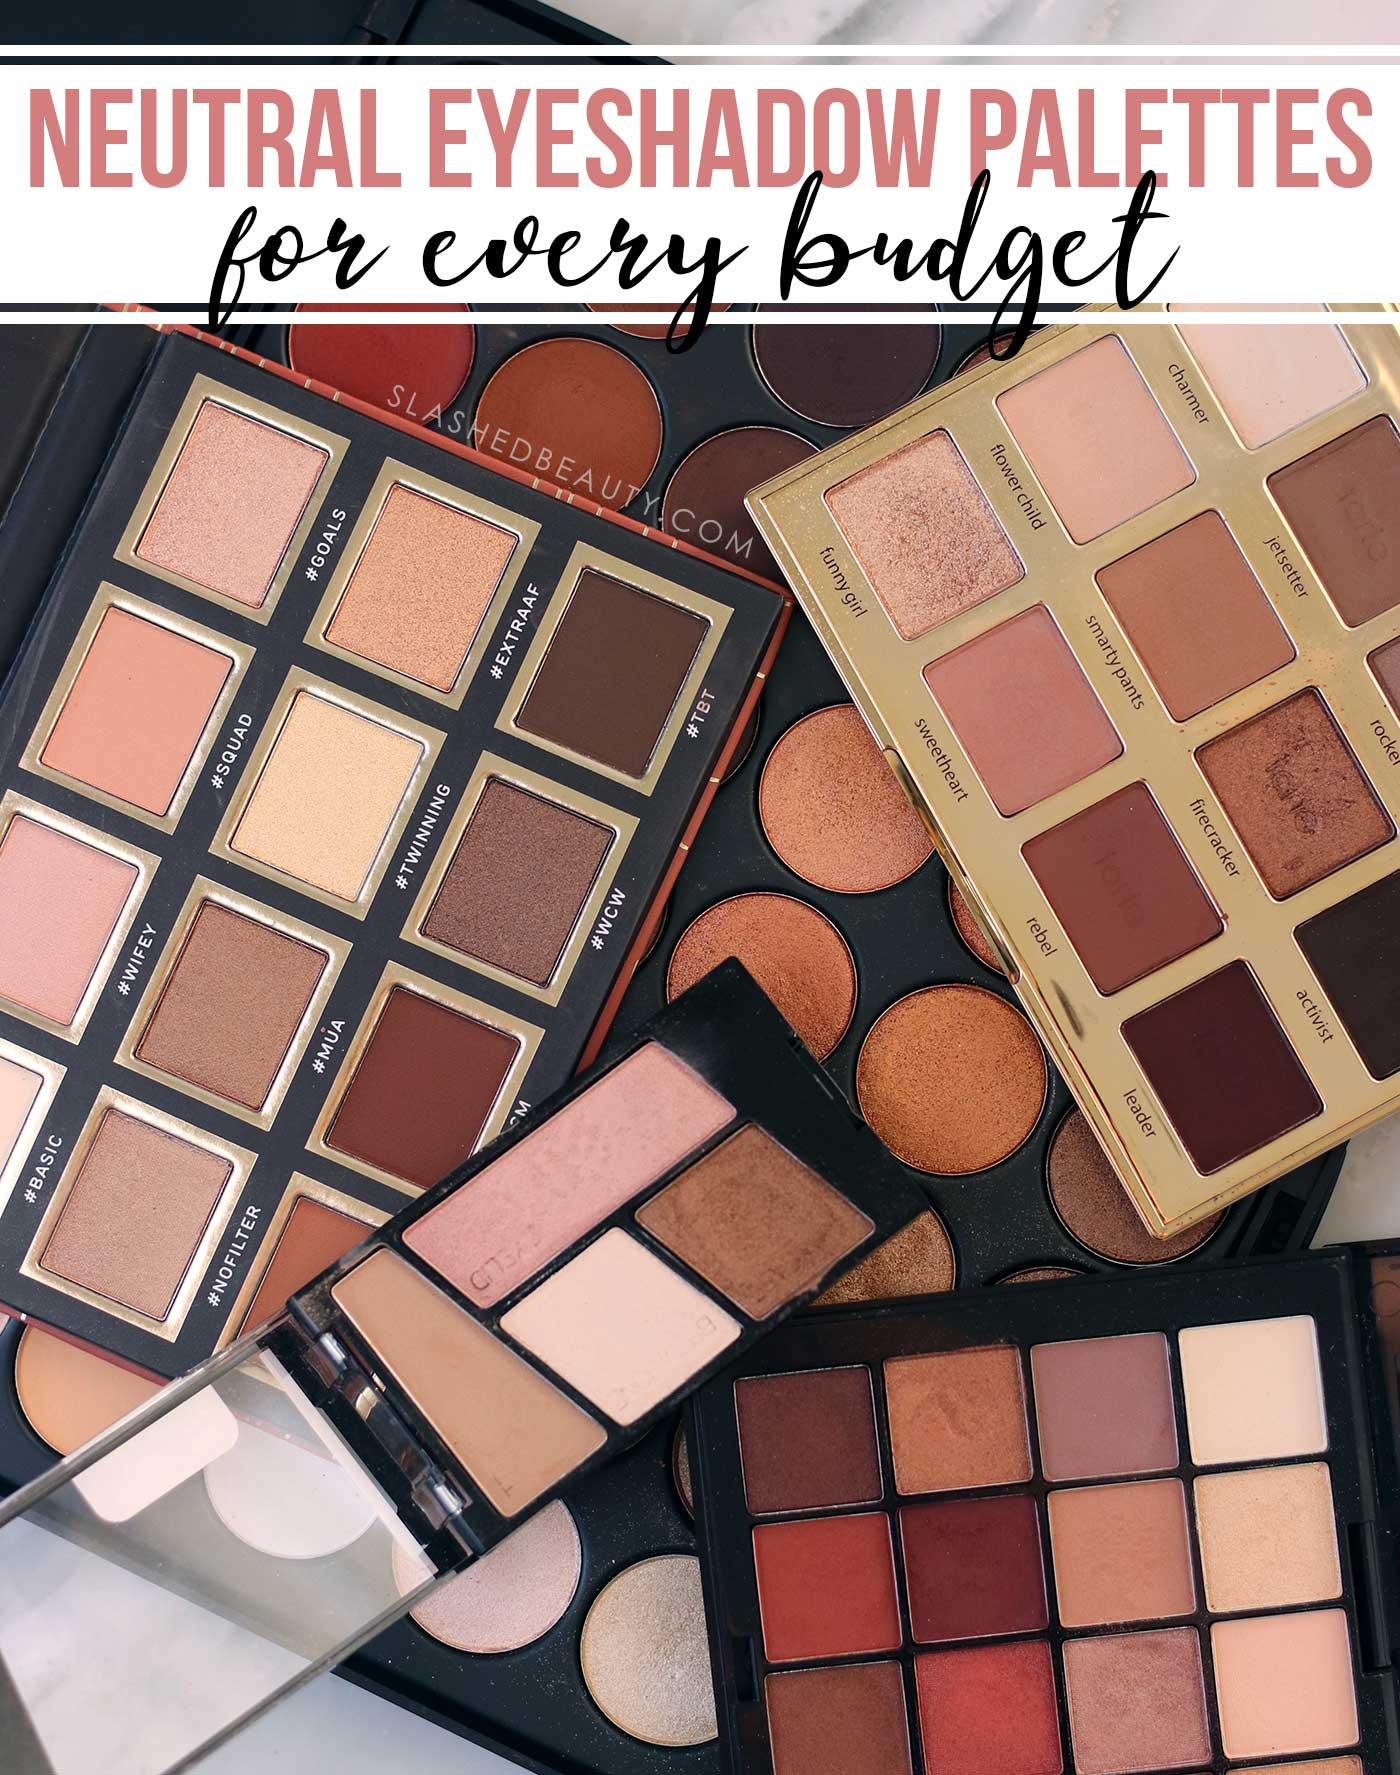 5 Neutral Eyeshadow Palettes for Every Budget | Best Neutral Eyeshadow Palettes | Slashed Beauty